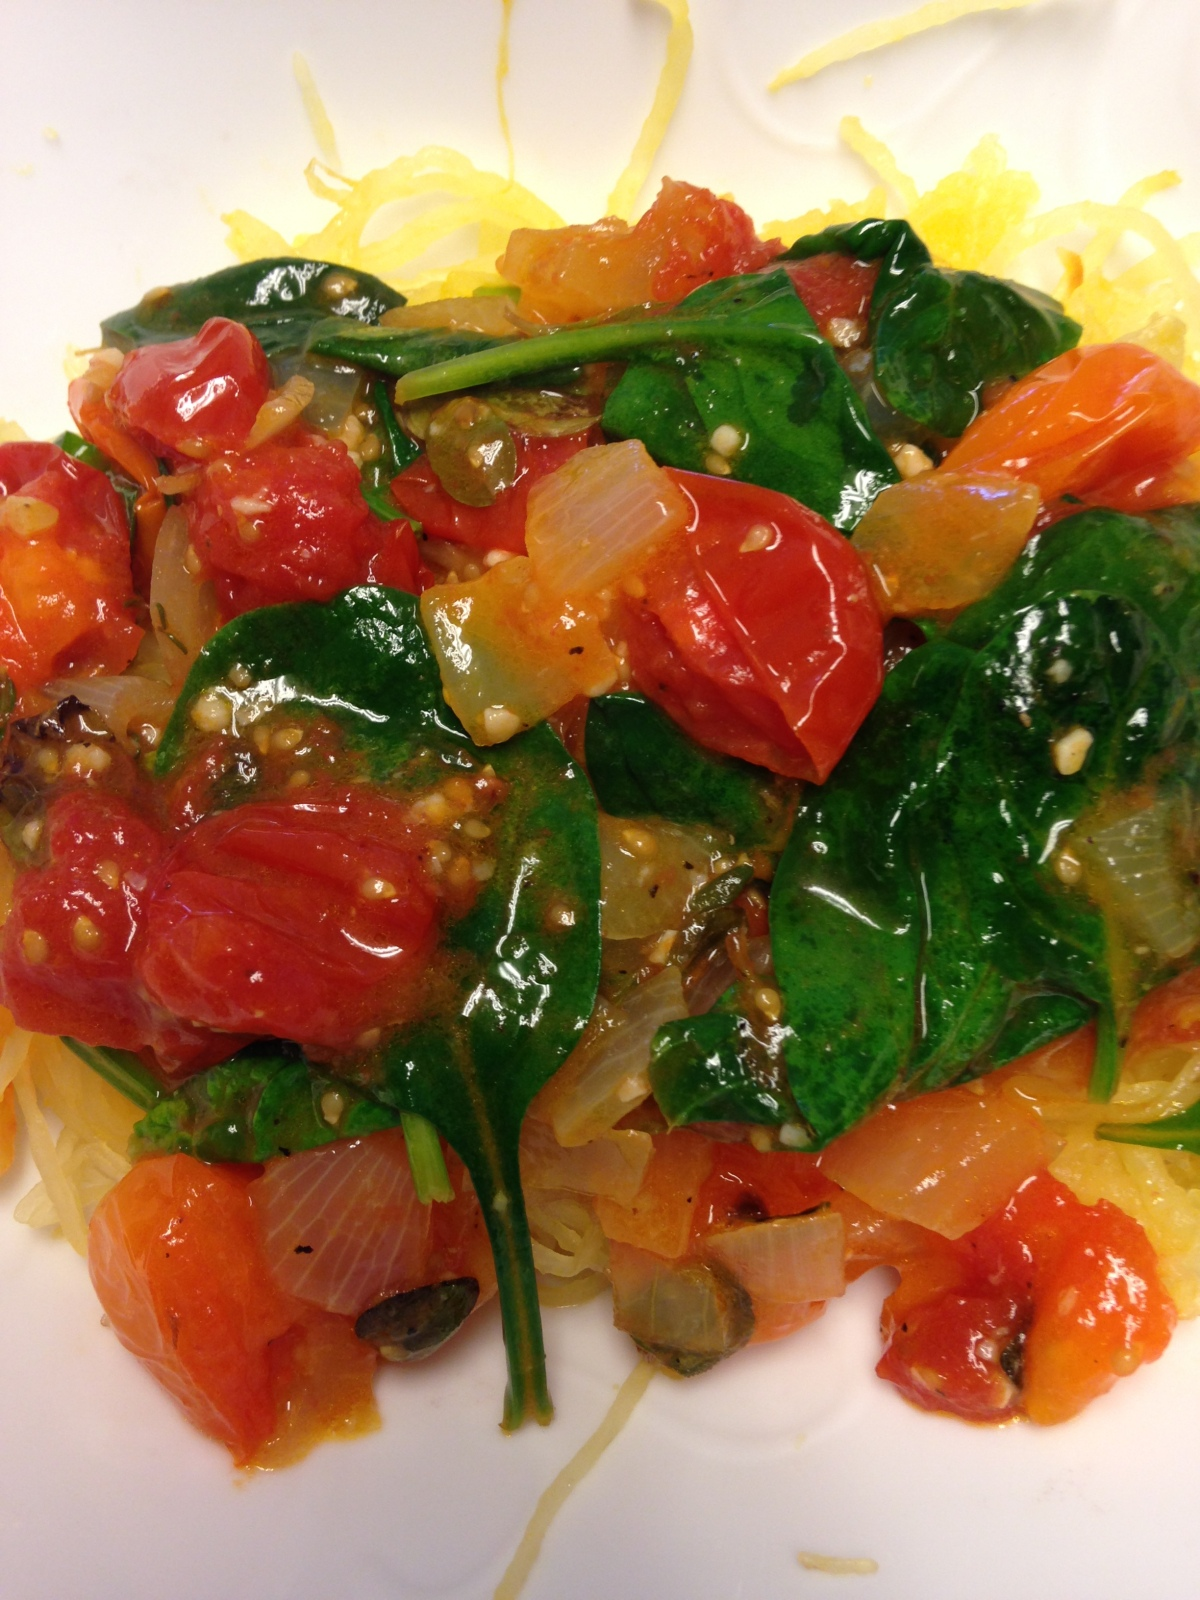 Spaghetti Squash and Tomatoes